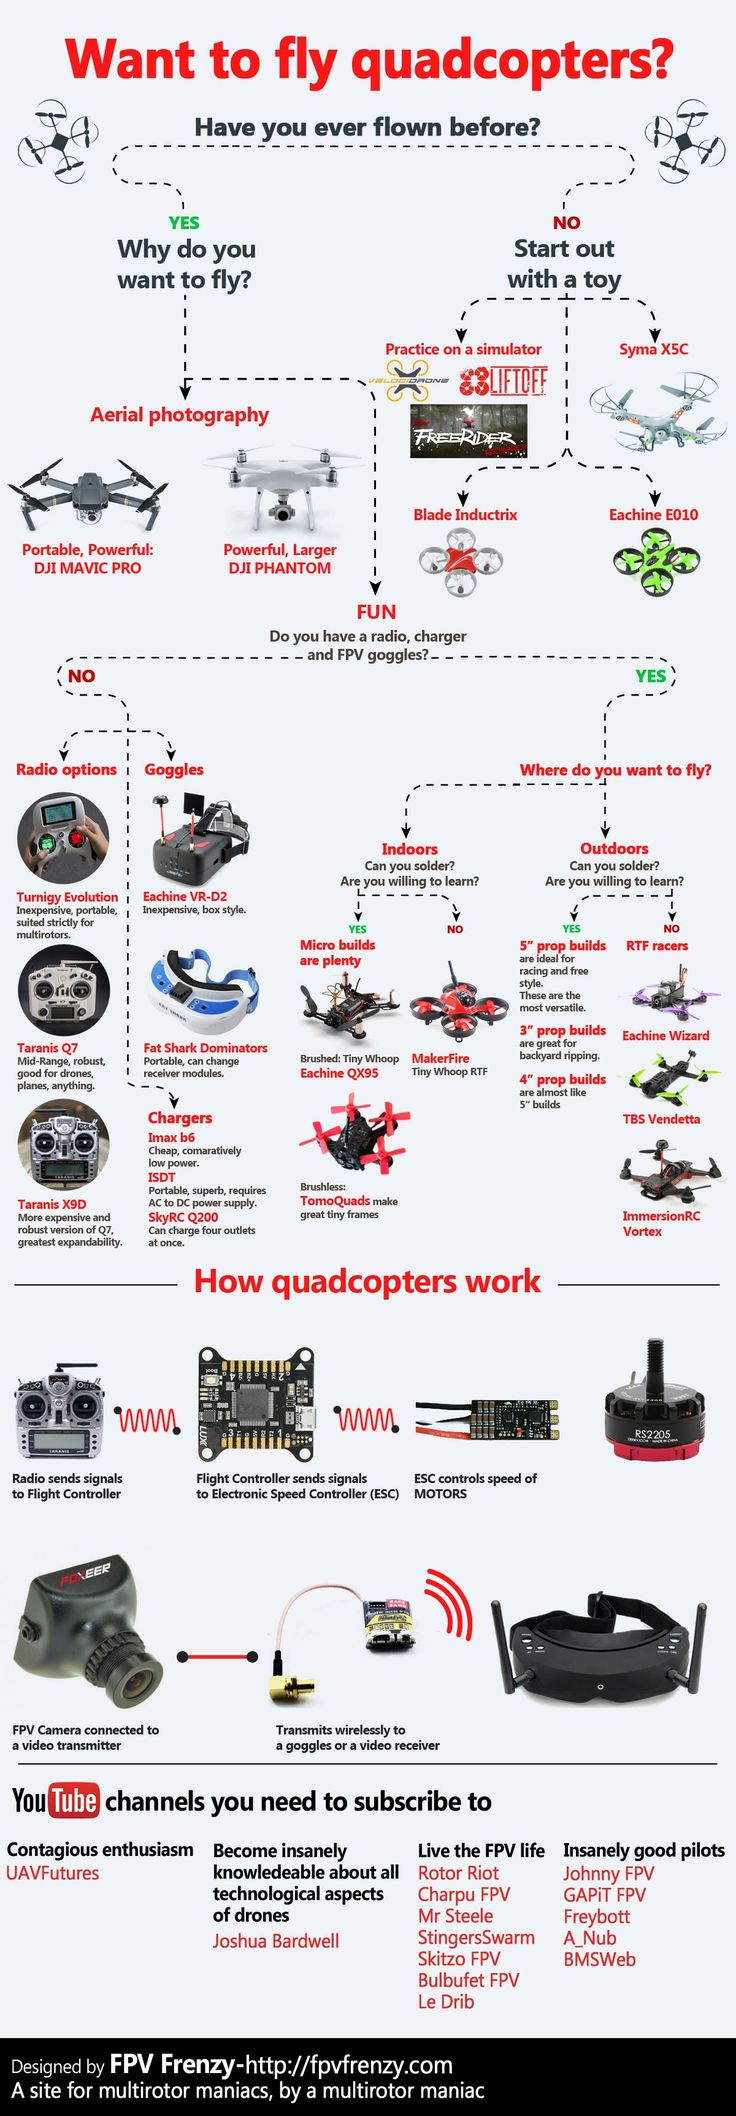 do-you-want-to-fly-drones.jpg (1200×3450)